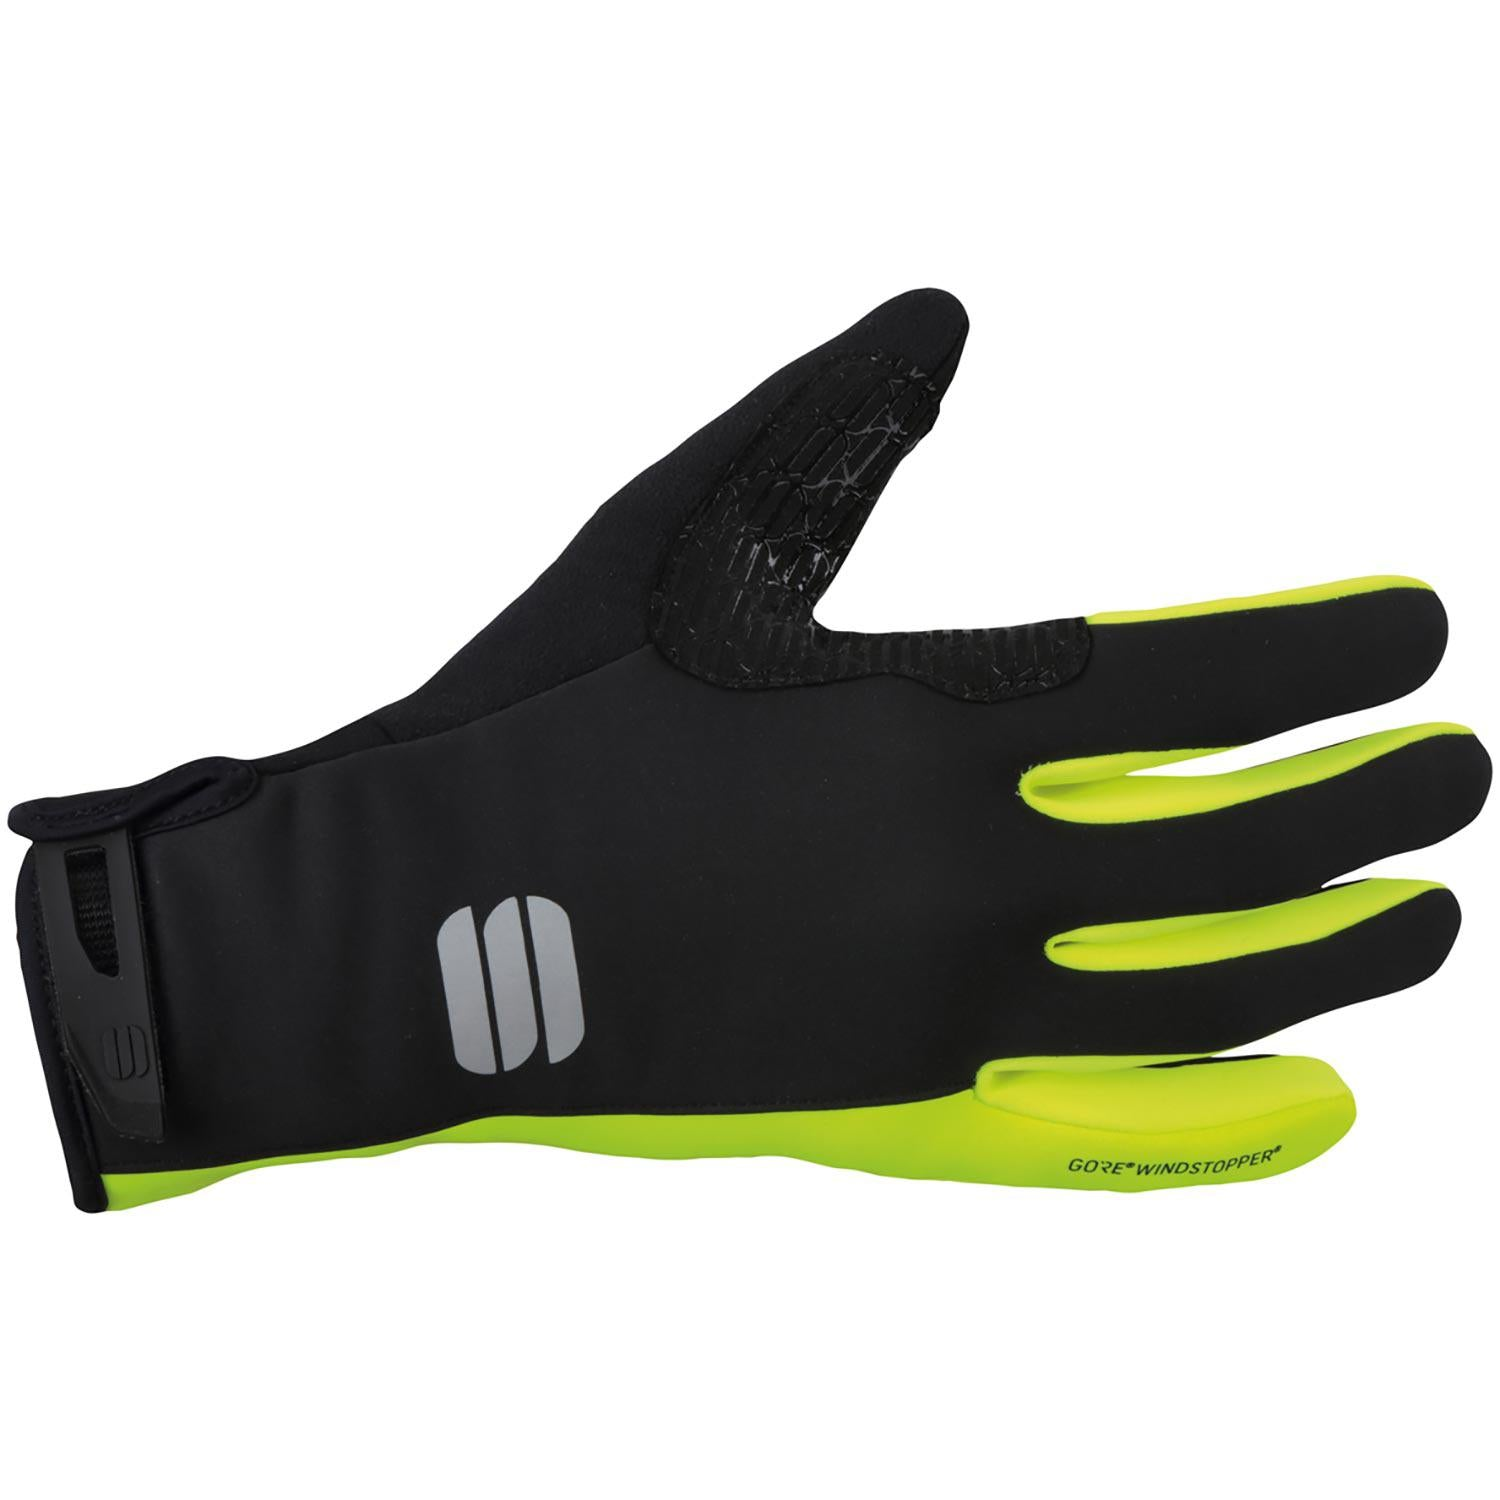 Sportful-Sportful WS Essential 2 Gloves-Black/Yellow Fluo-XS-SF019680911-saddleback-elite-performance-cycling